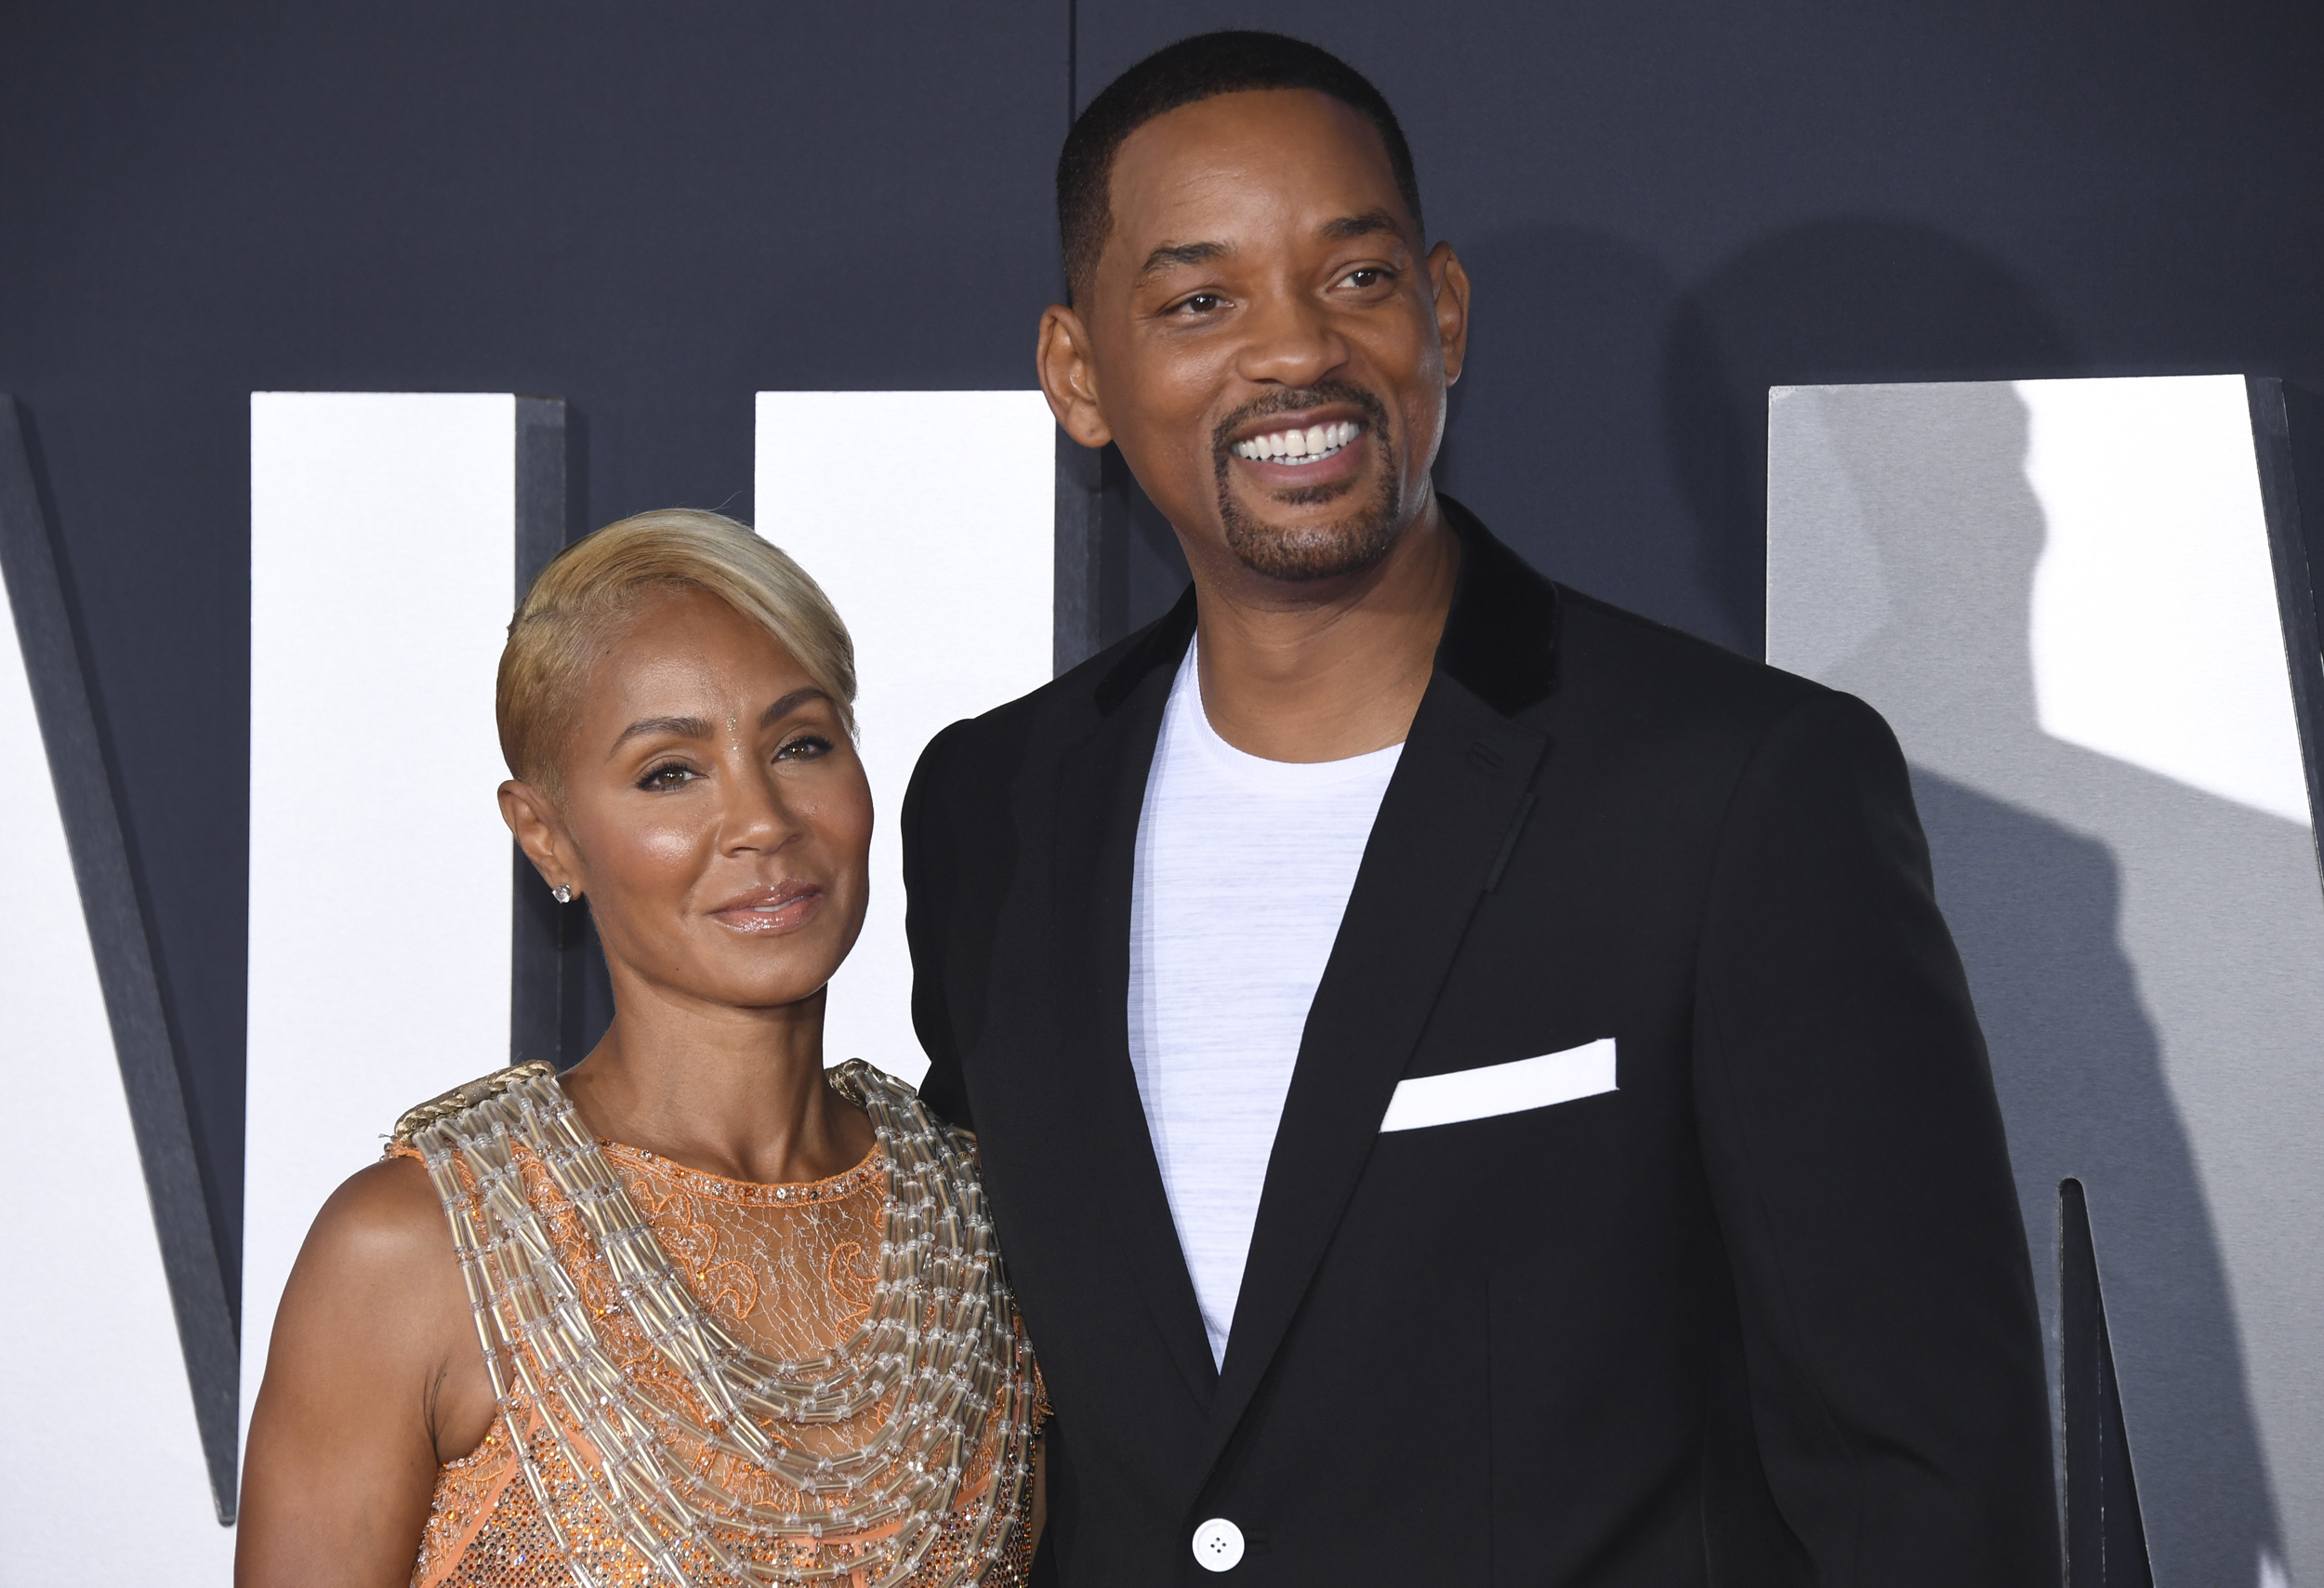 Will Smith Goes Off On 50 Cent Over Jada Pinkett Smith Jabs